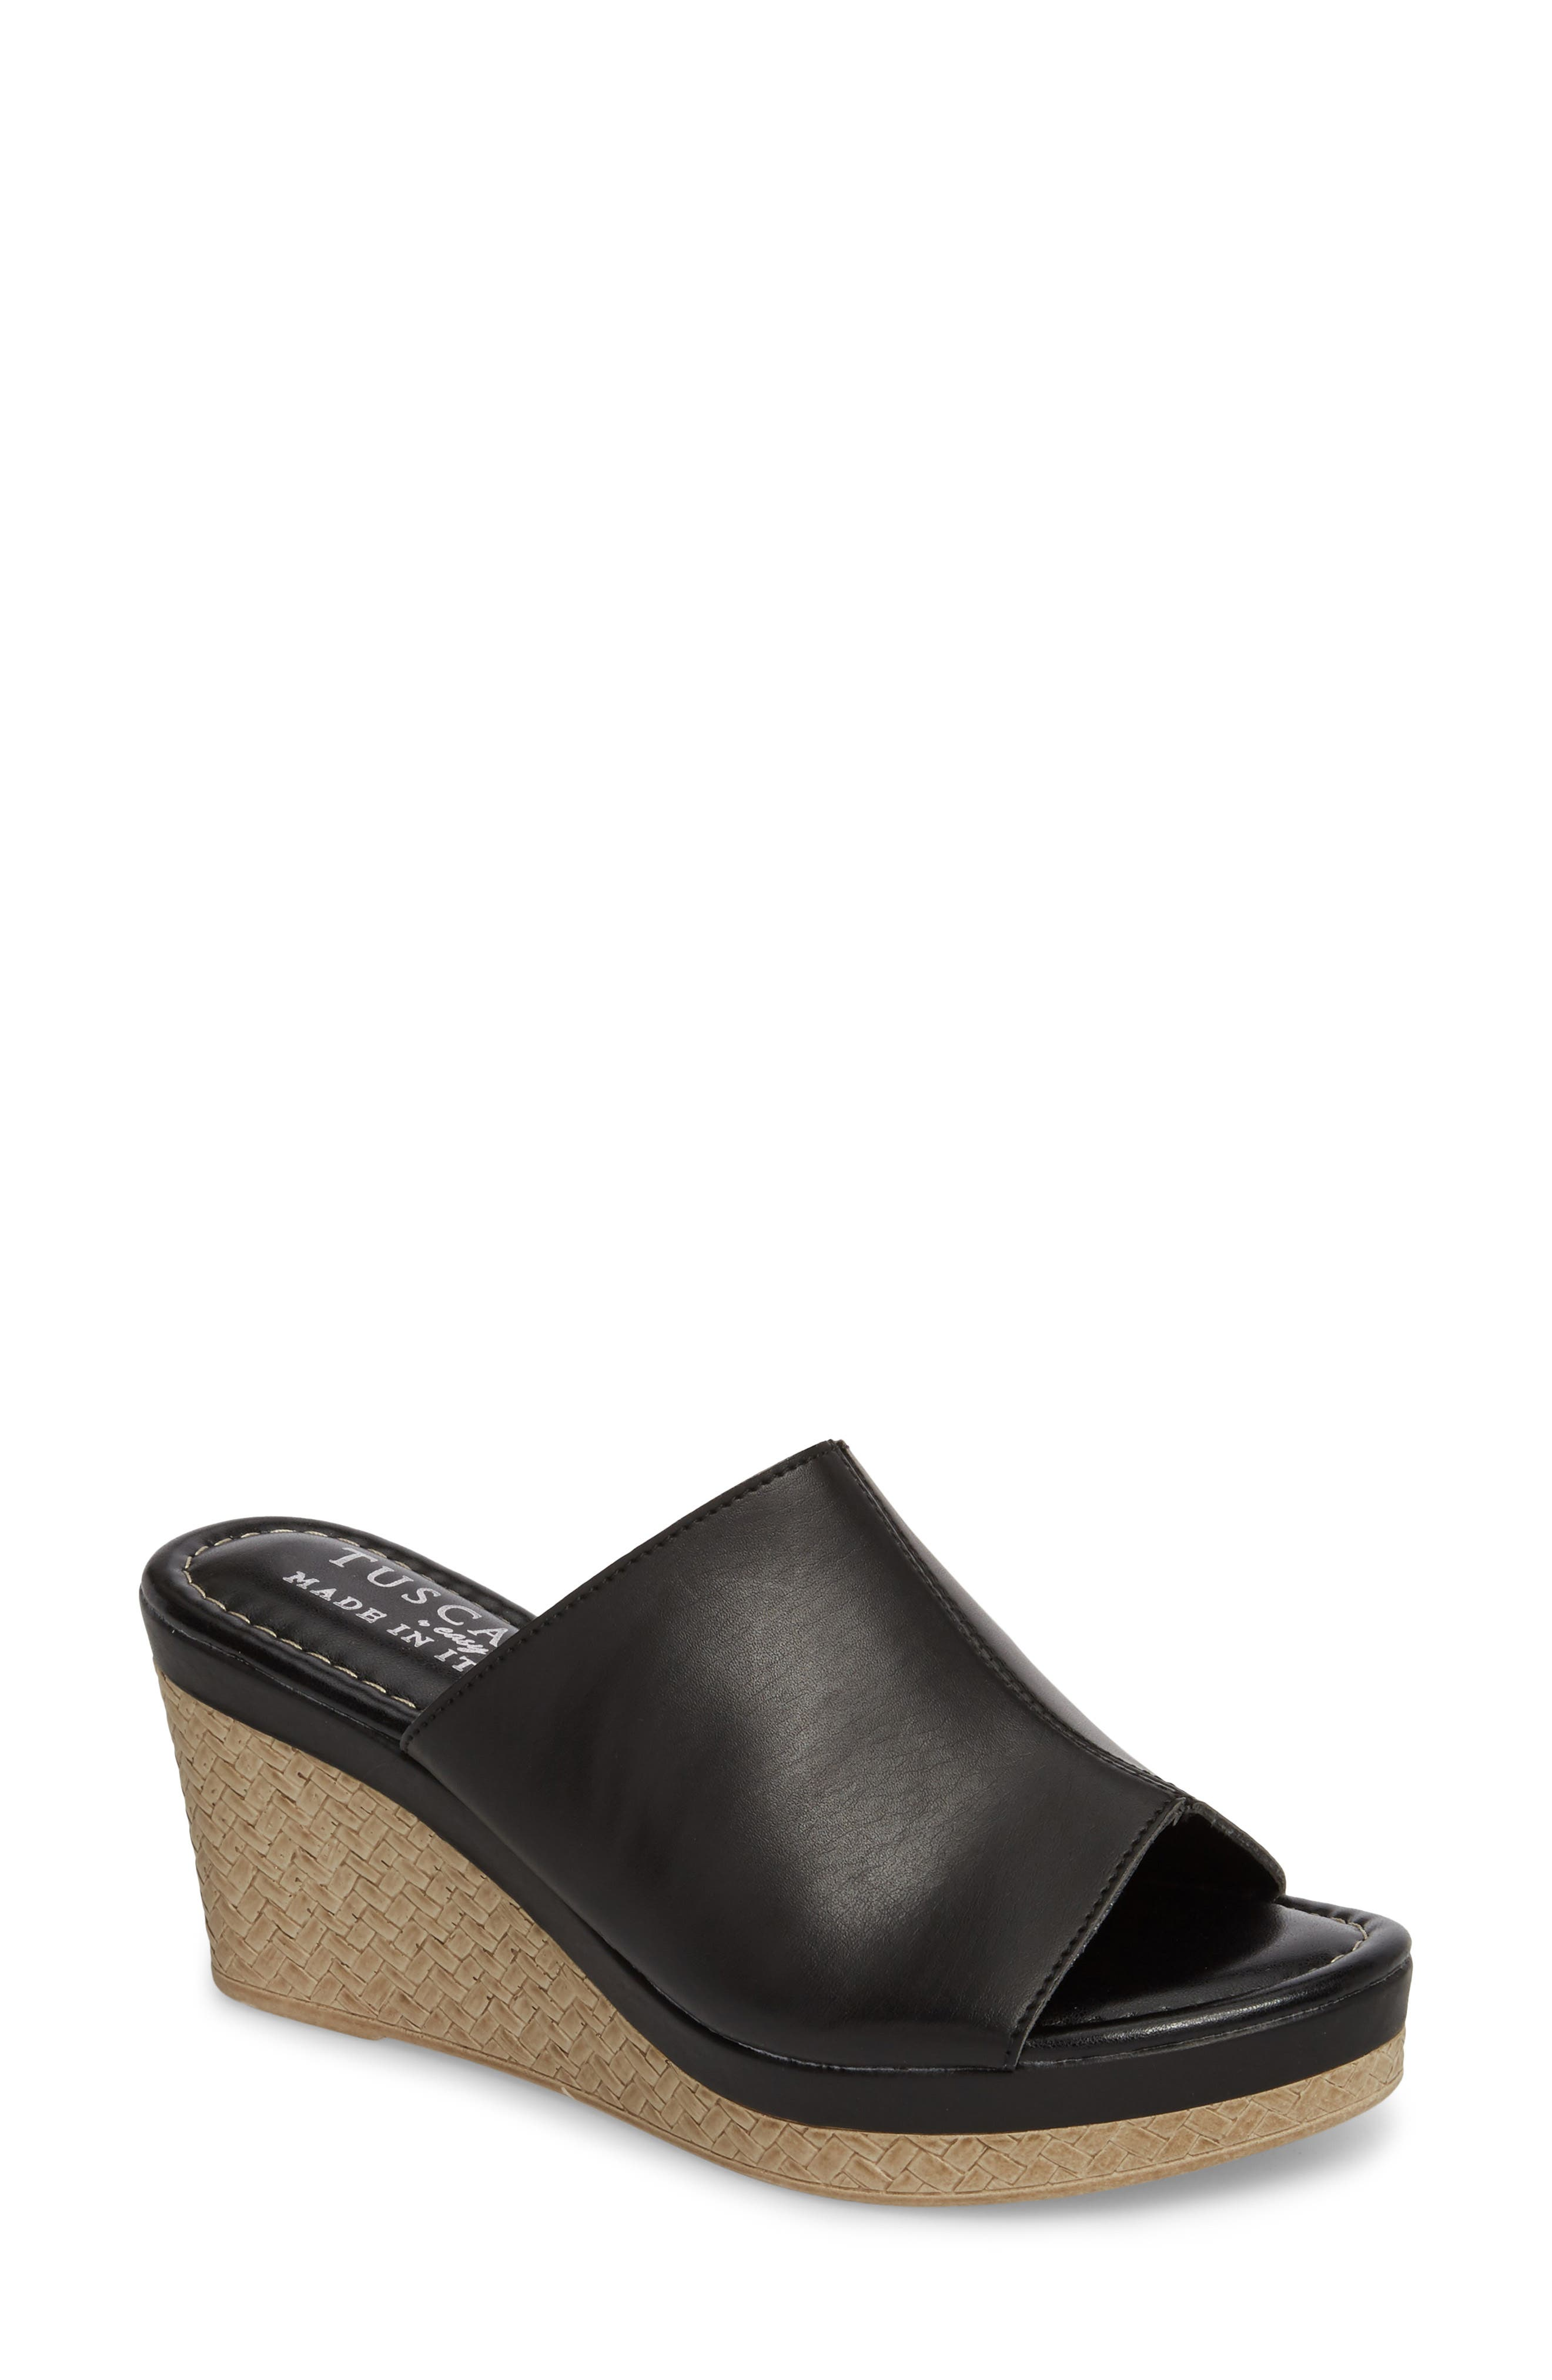 TUSCANY BY EASY STREET<SUP>®</SUP> Octavia Espadrille Wedge, Main, color, 001